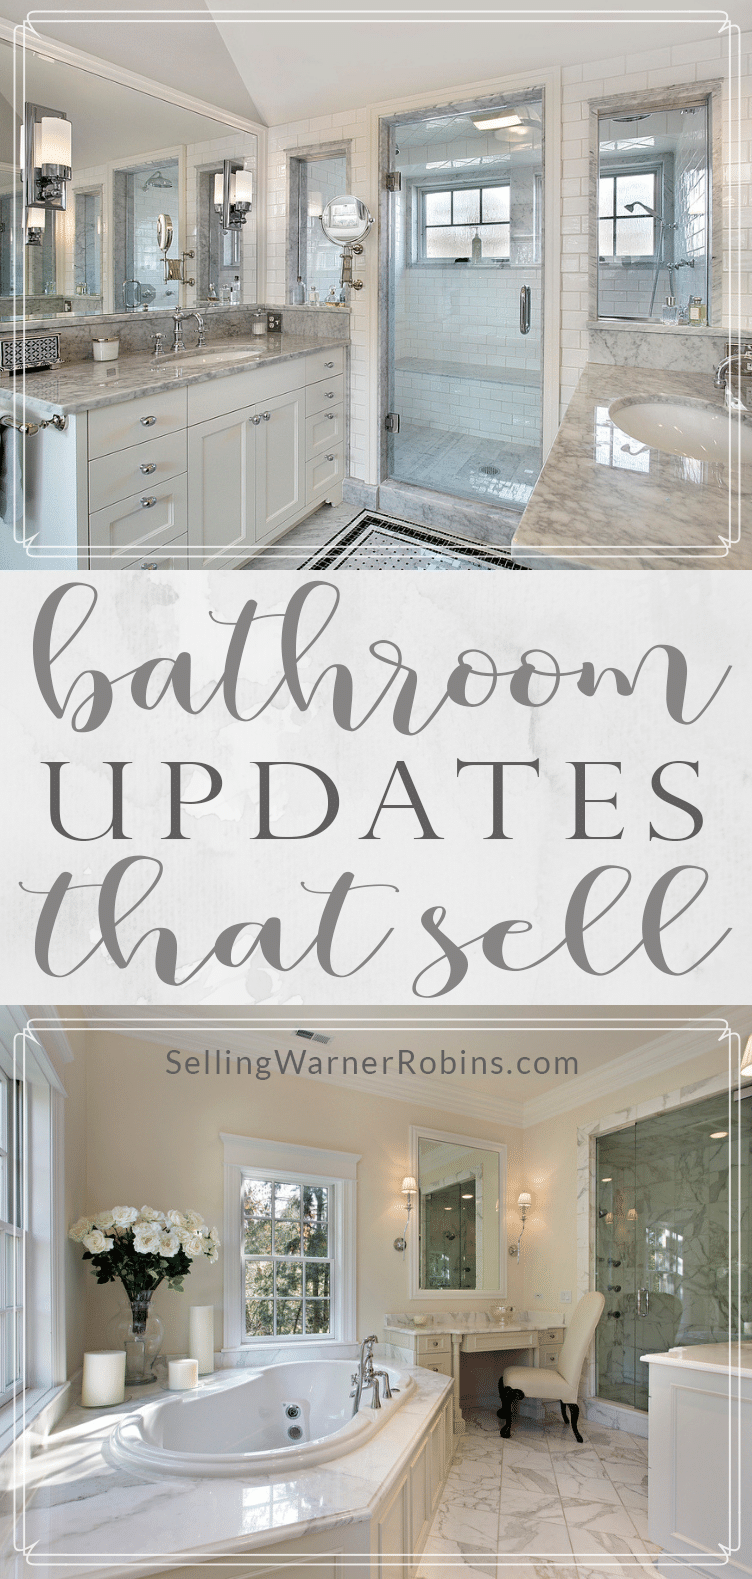 Bathroom Updates That Sell